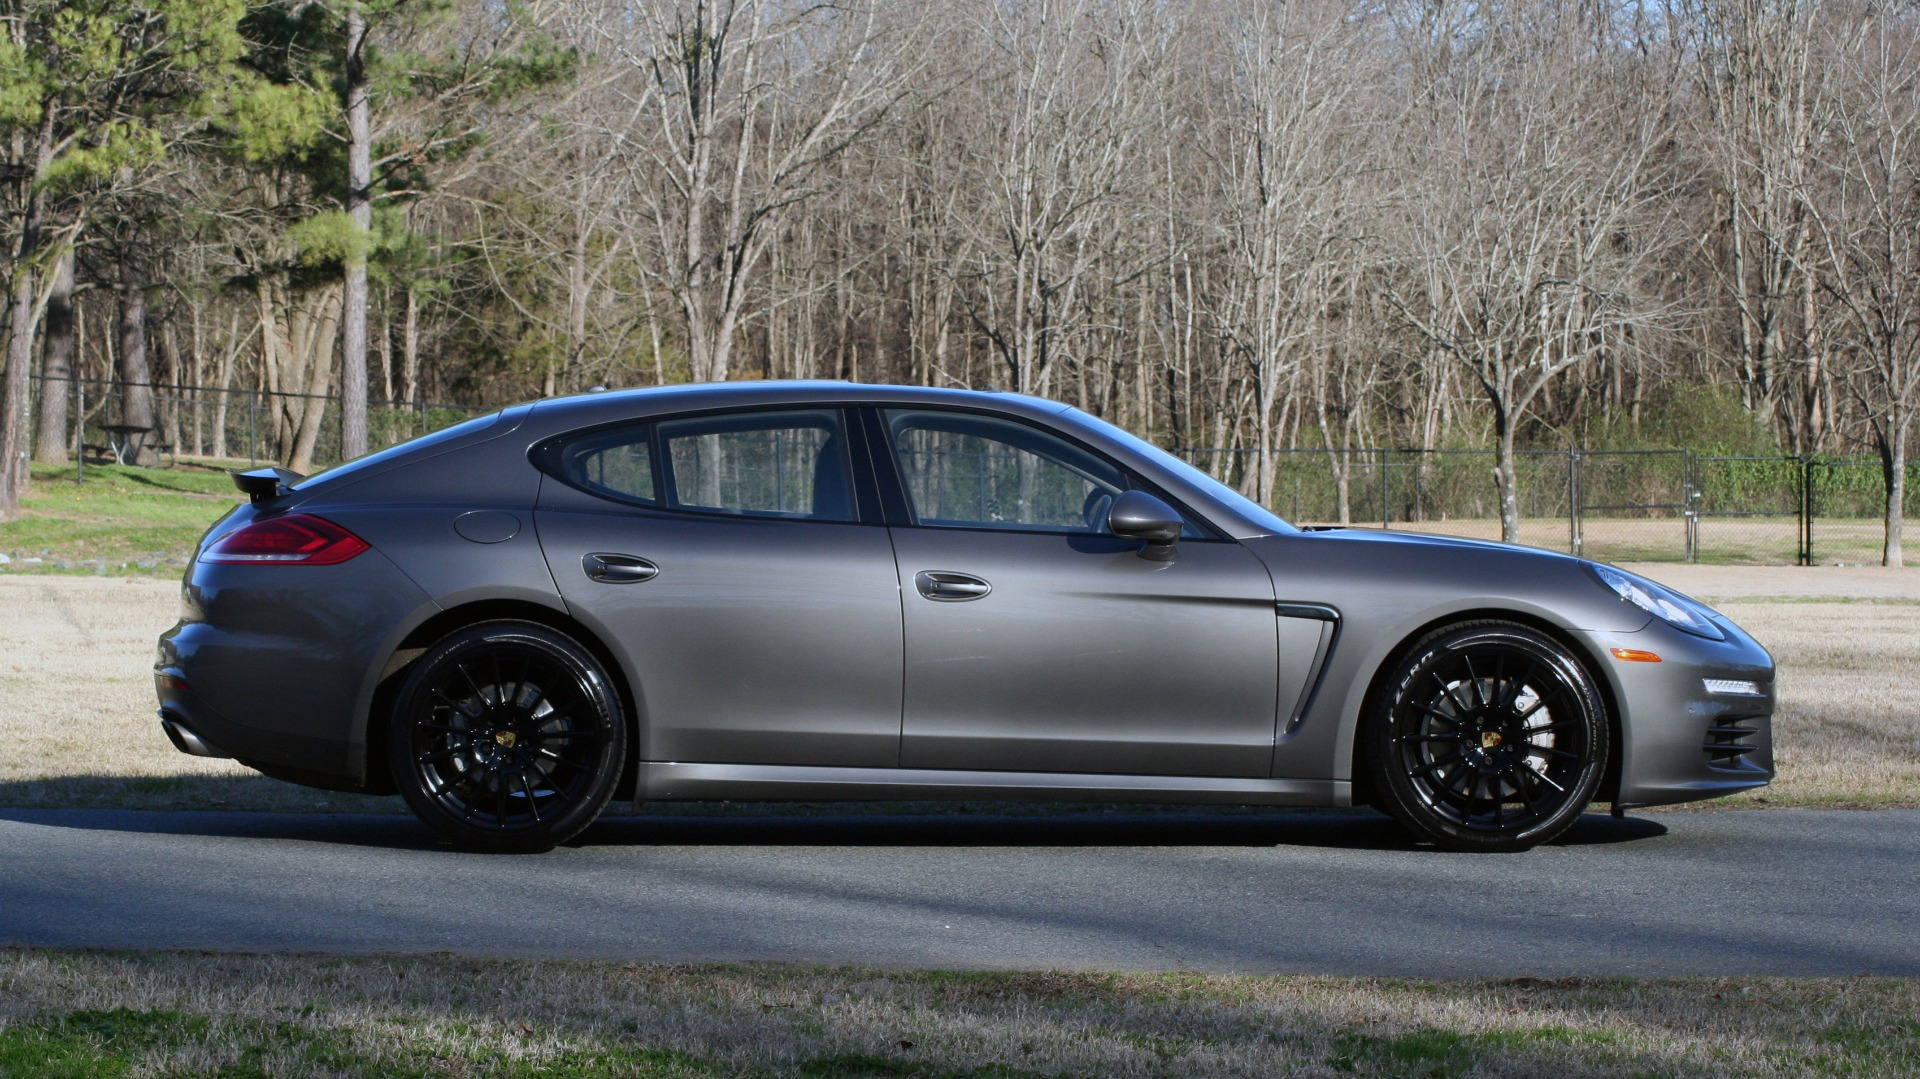 Used 2016 Porsche PANAMERA S / TURBO V6 / PDK / NAV / BOSE / SNRF / LDW / REARVIEW for sale Sold at Formula Imports in Charlotte NC 28227 15